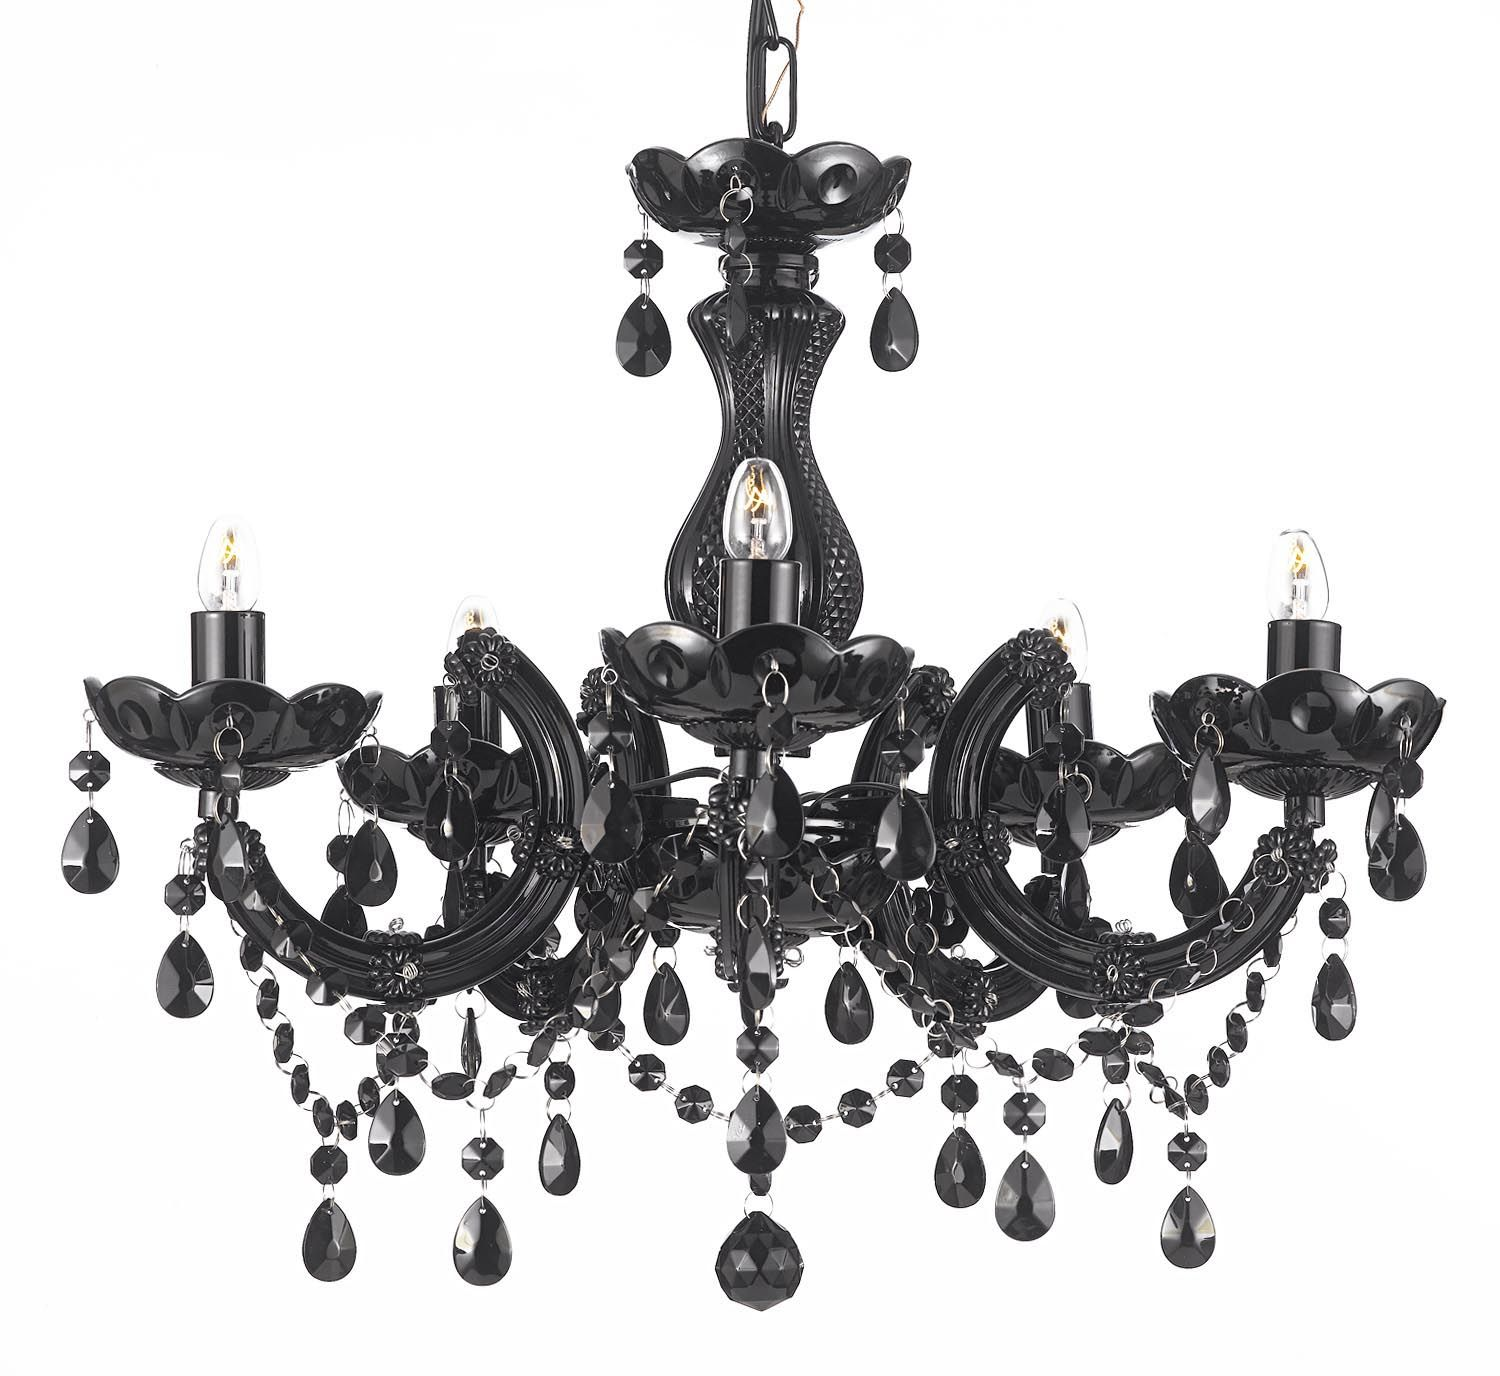 J10 blackmt5p gallery maria theresa jet black crystal chandelier j10 blackmt5p gallery maria theresa jet black crystal chandelier mozeypictures Image collections